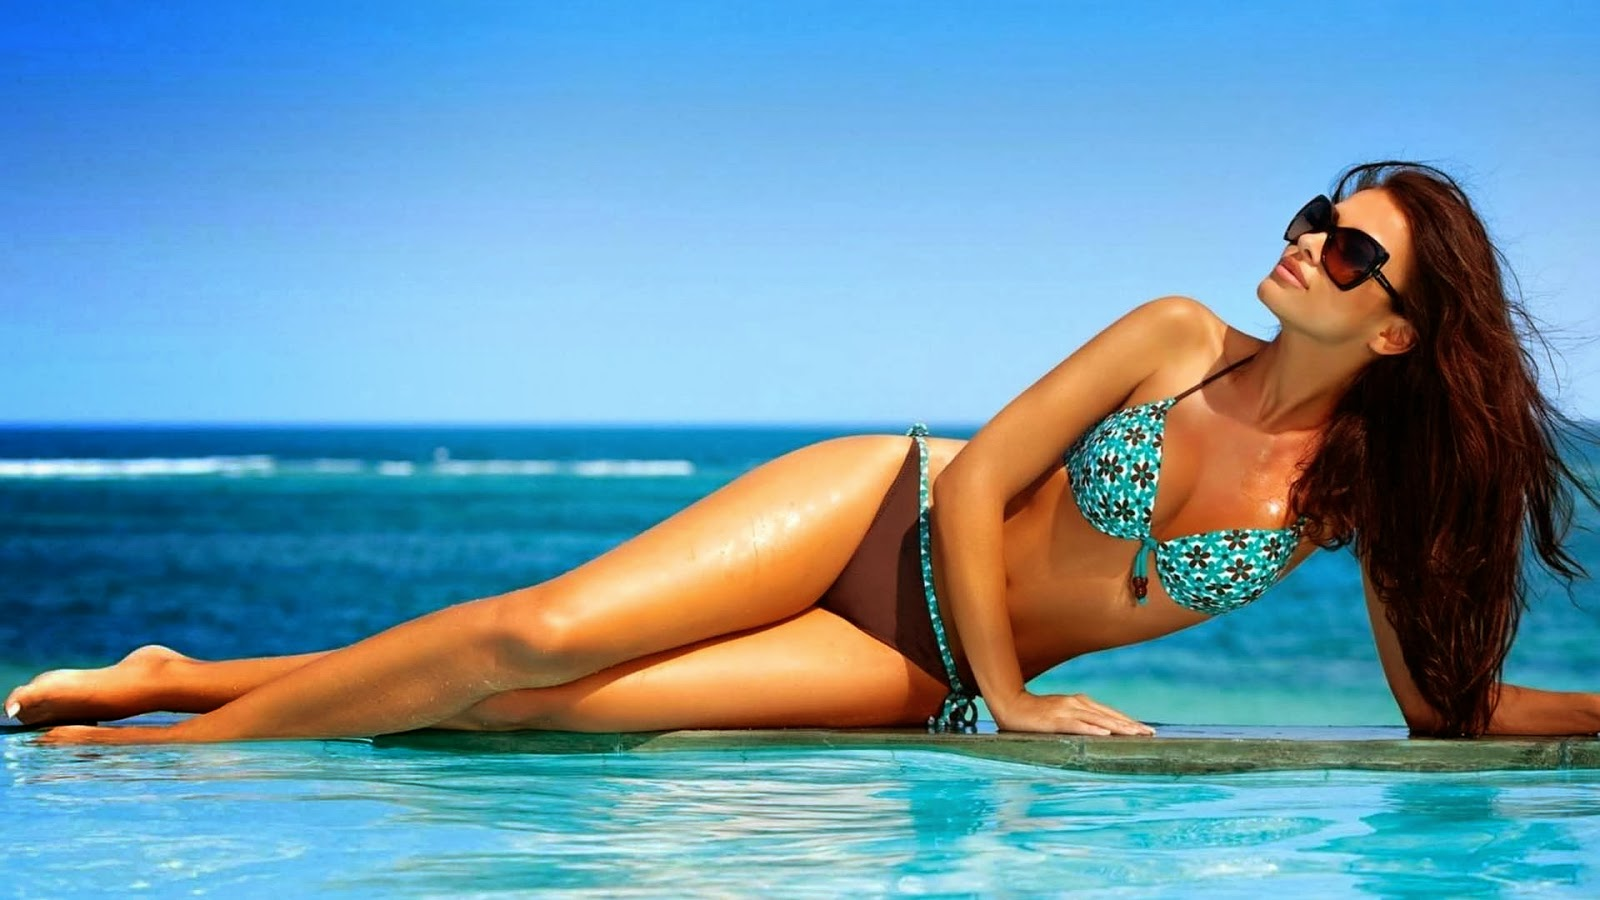 Swimwear Backgrounds, Compatible - PC, Mobile, Gadgets| 1600x900 px